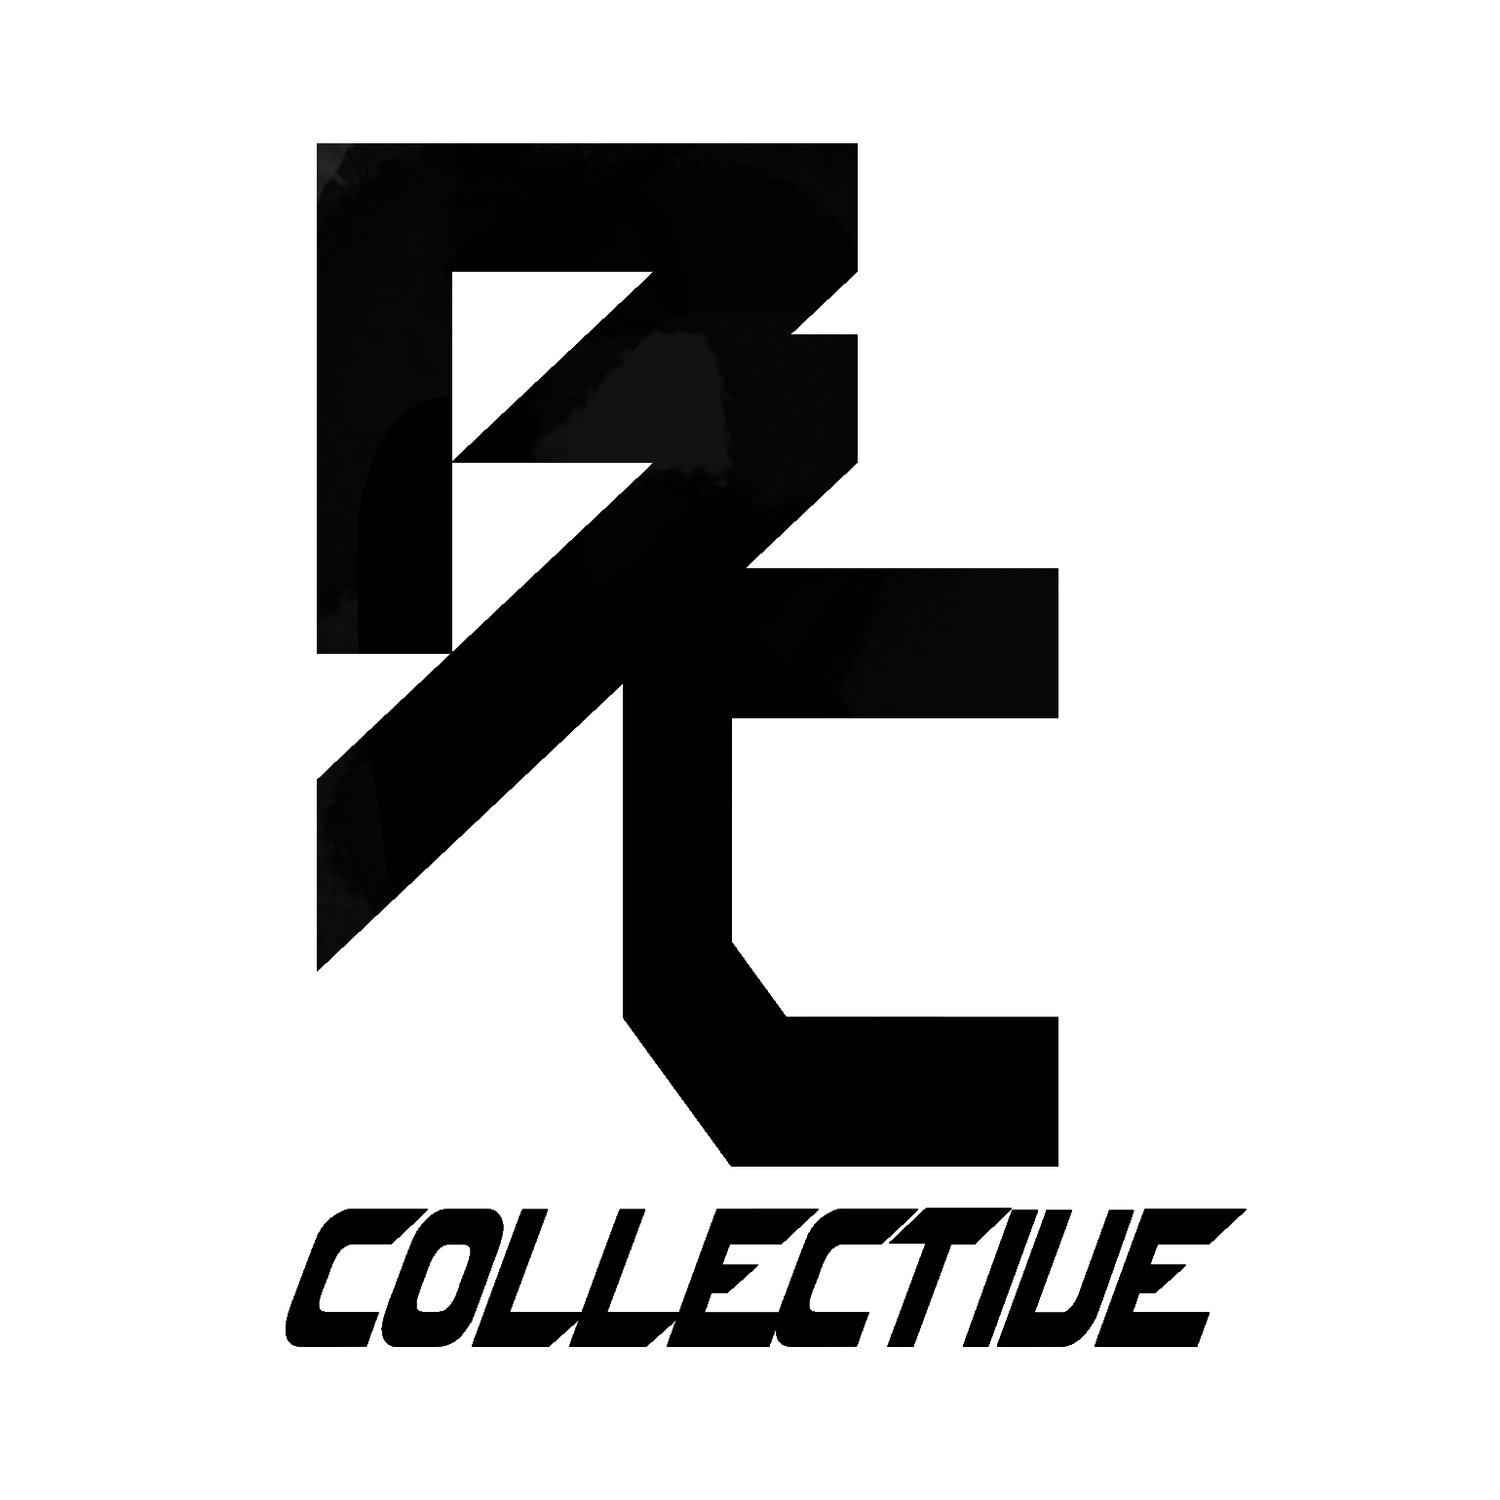 BC Collective | Automotive & Motorsport Publications